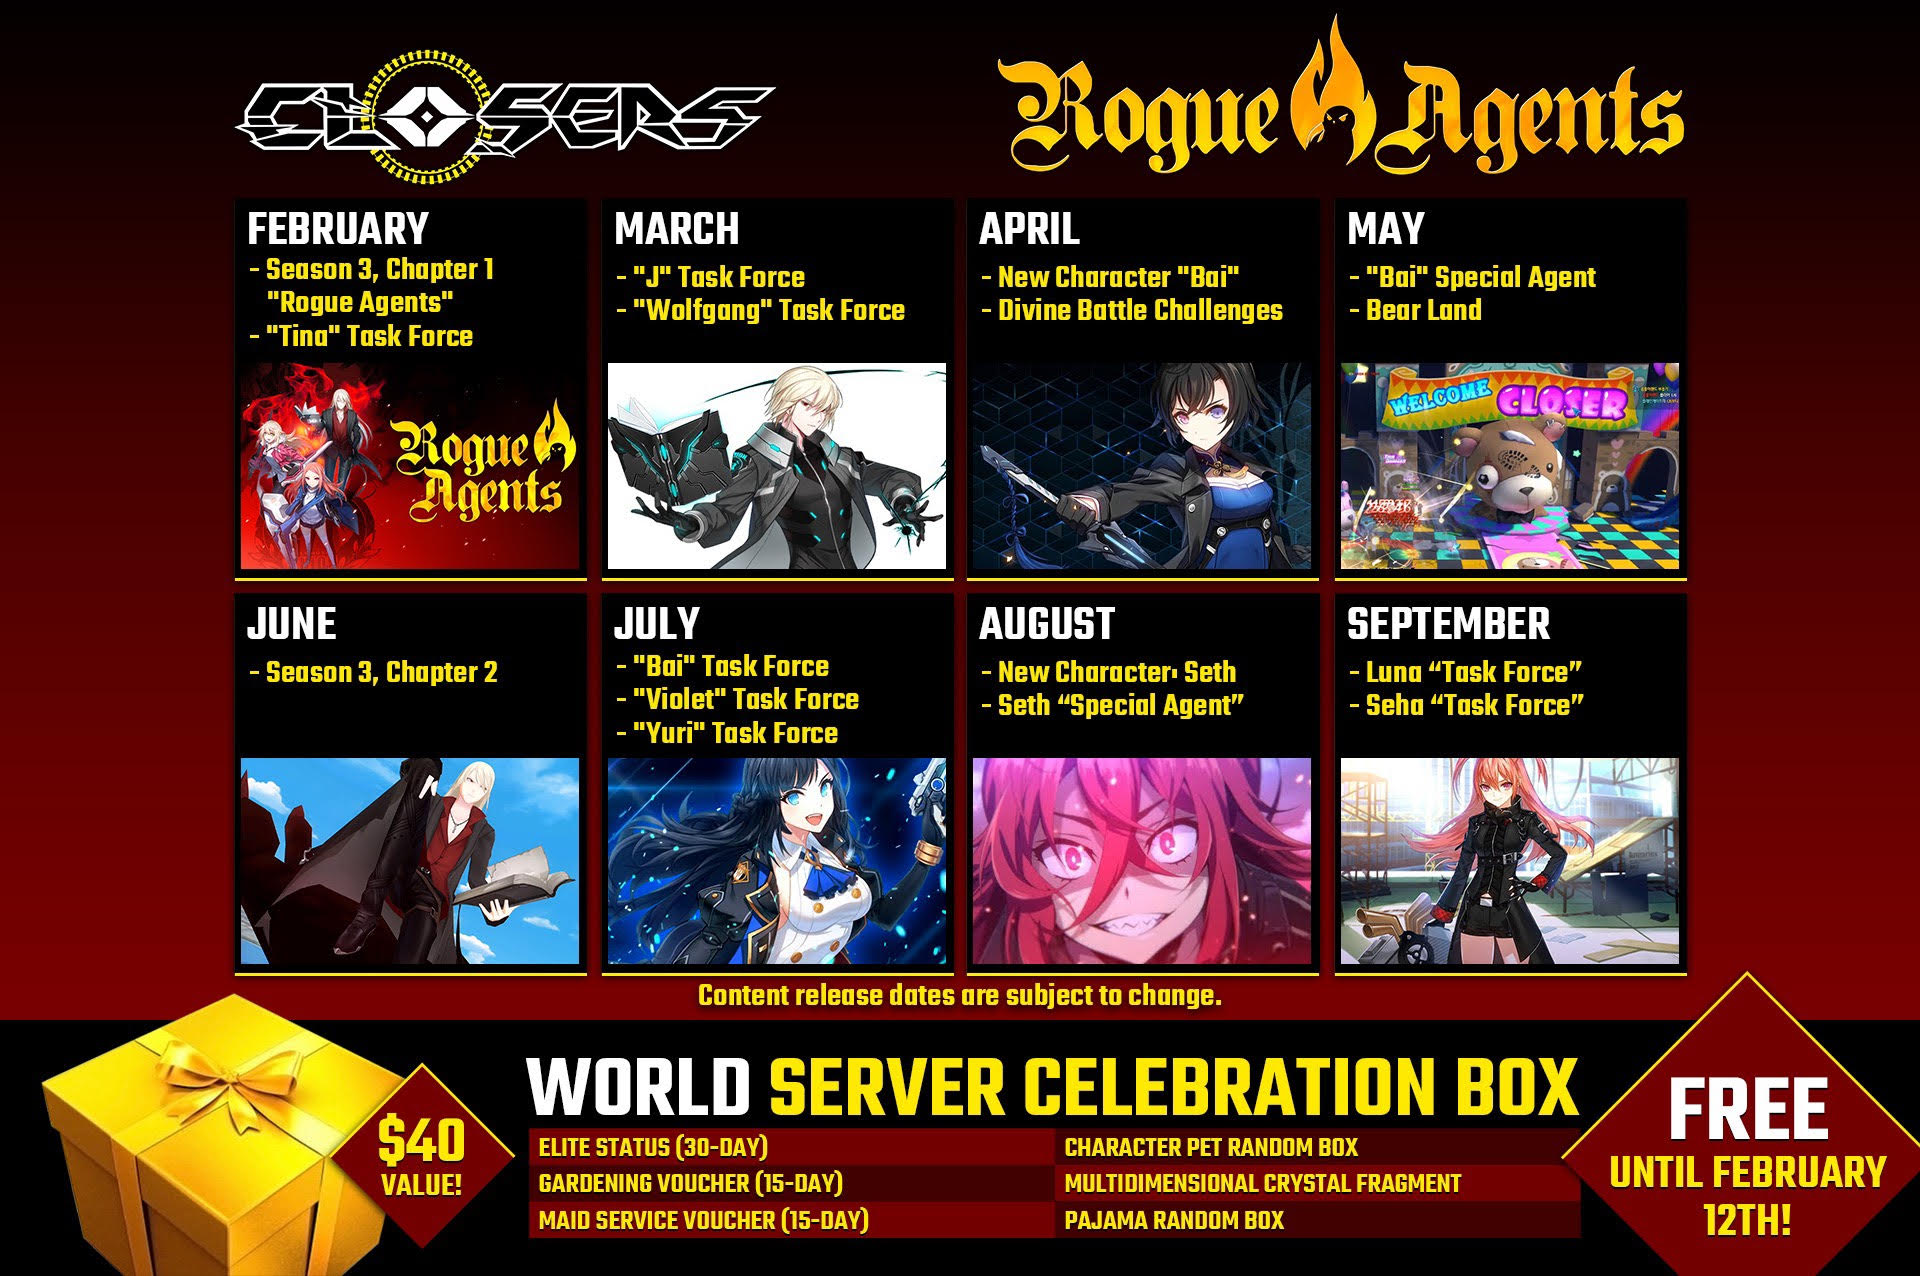 Closers 2019 roadmap preview